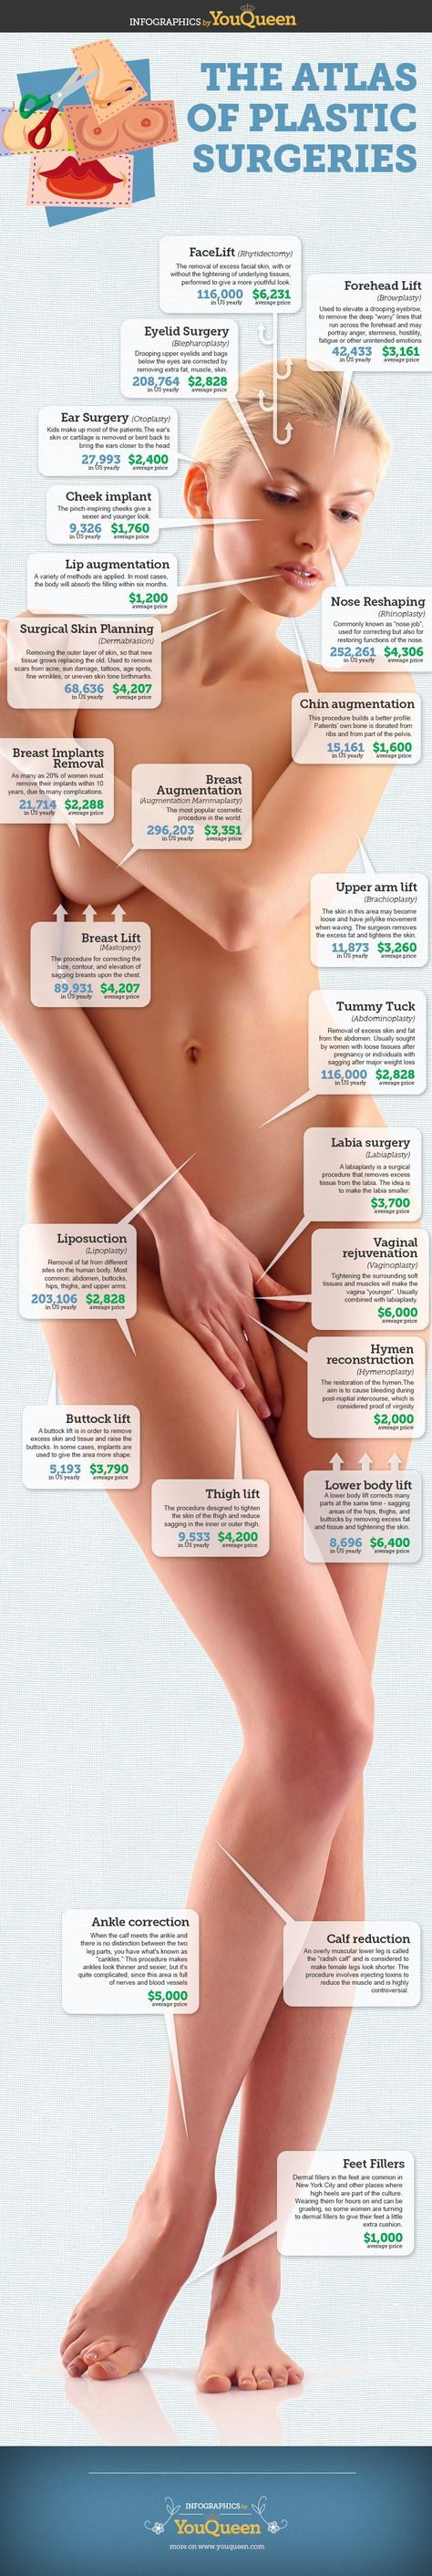 The Atlas of Plastic Surgeries (INFOGRAPHIC). Wow, I didn't know for all of these. Amazing! #PlasticSurgeries #Infographic